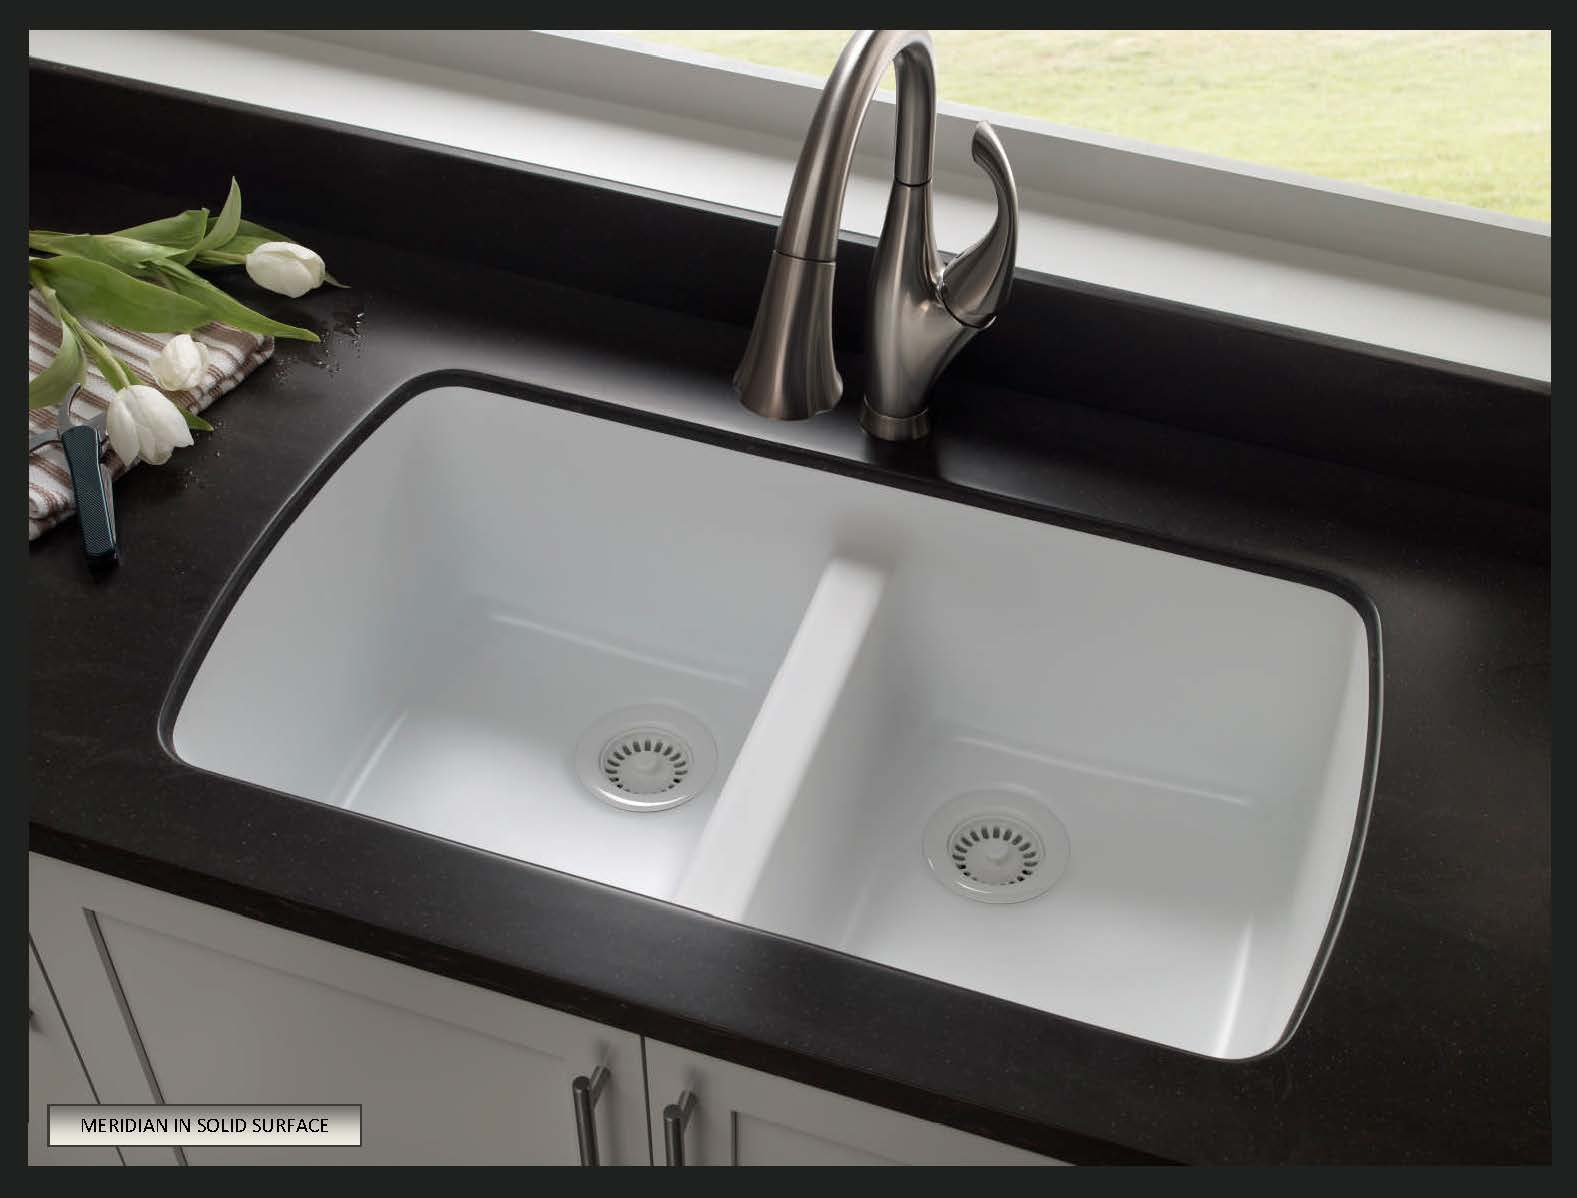 Charming Quartz Undermount Kitchen Sinks Part - 7: Karran Seamless Undermount Solid Surface